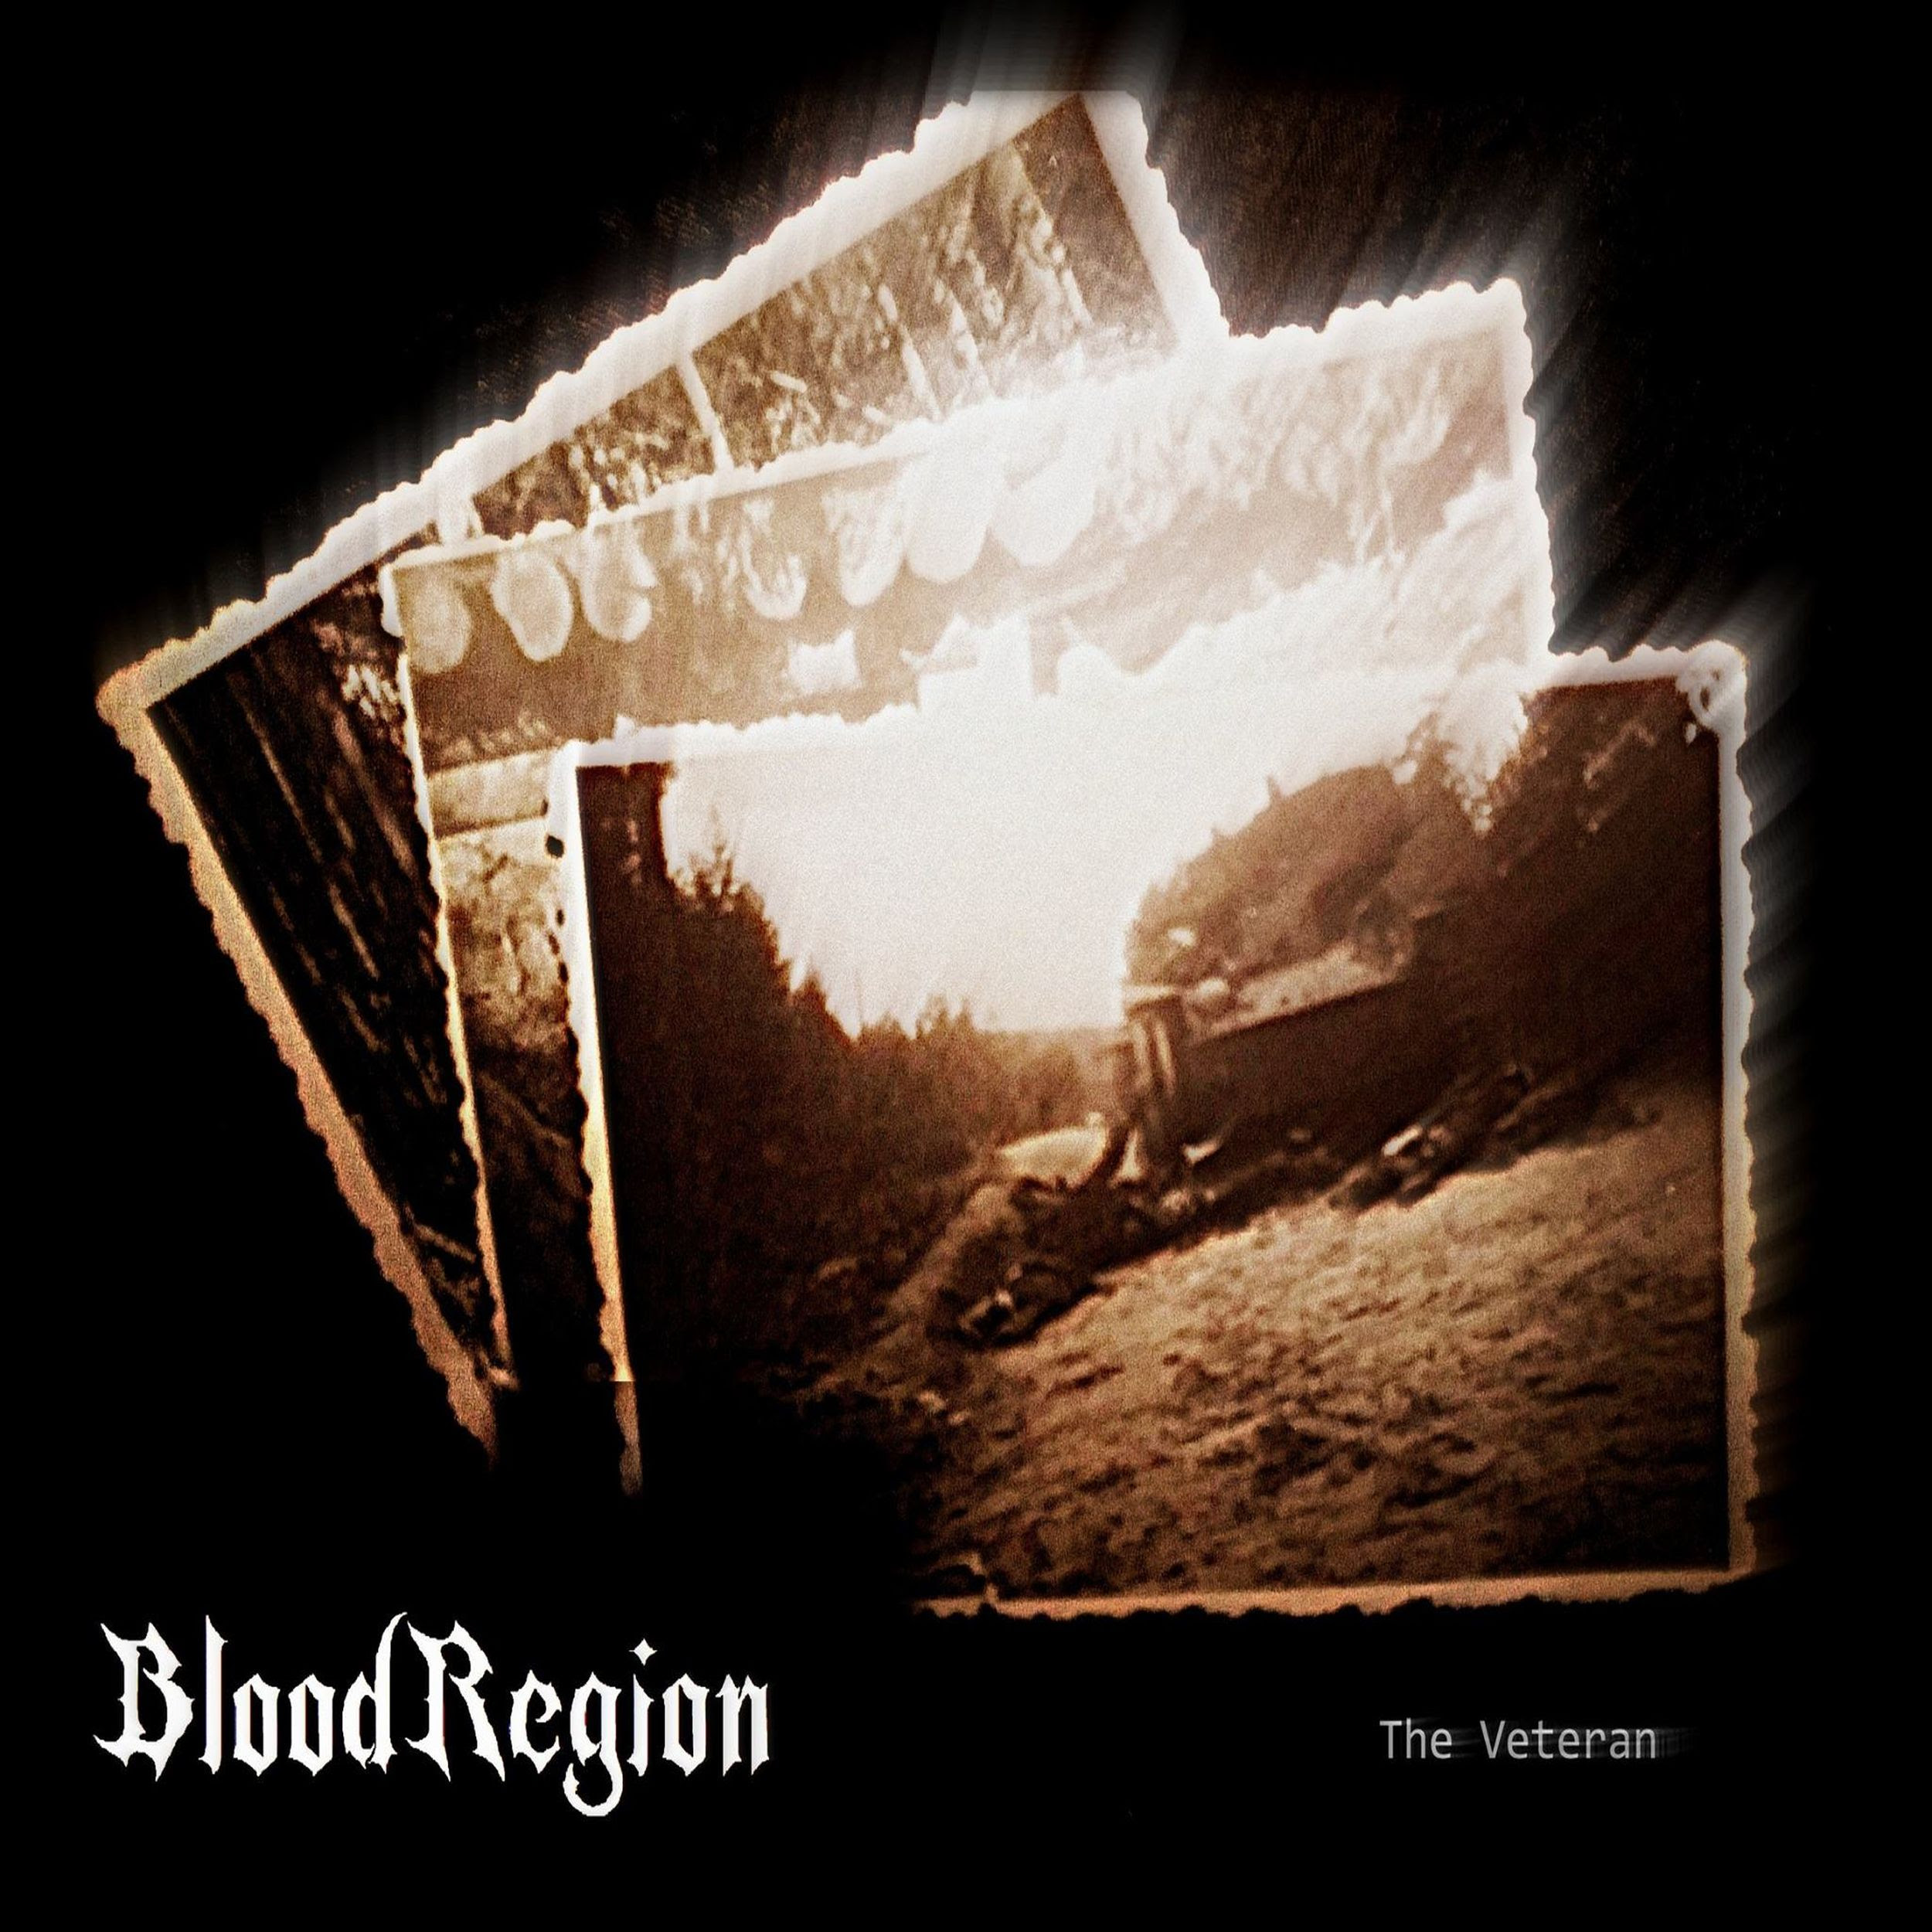 Blood Region